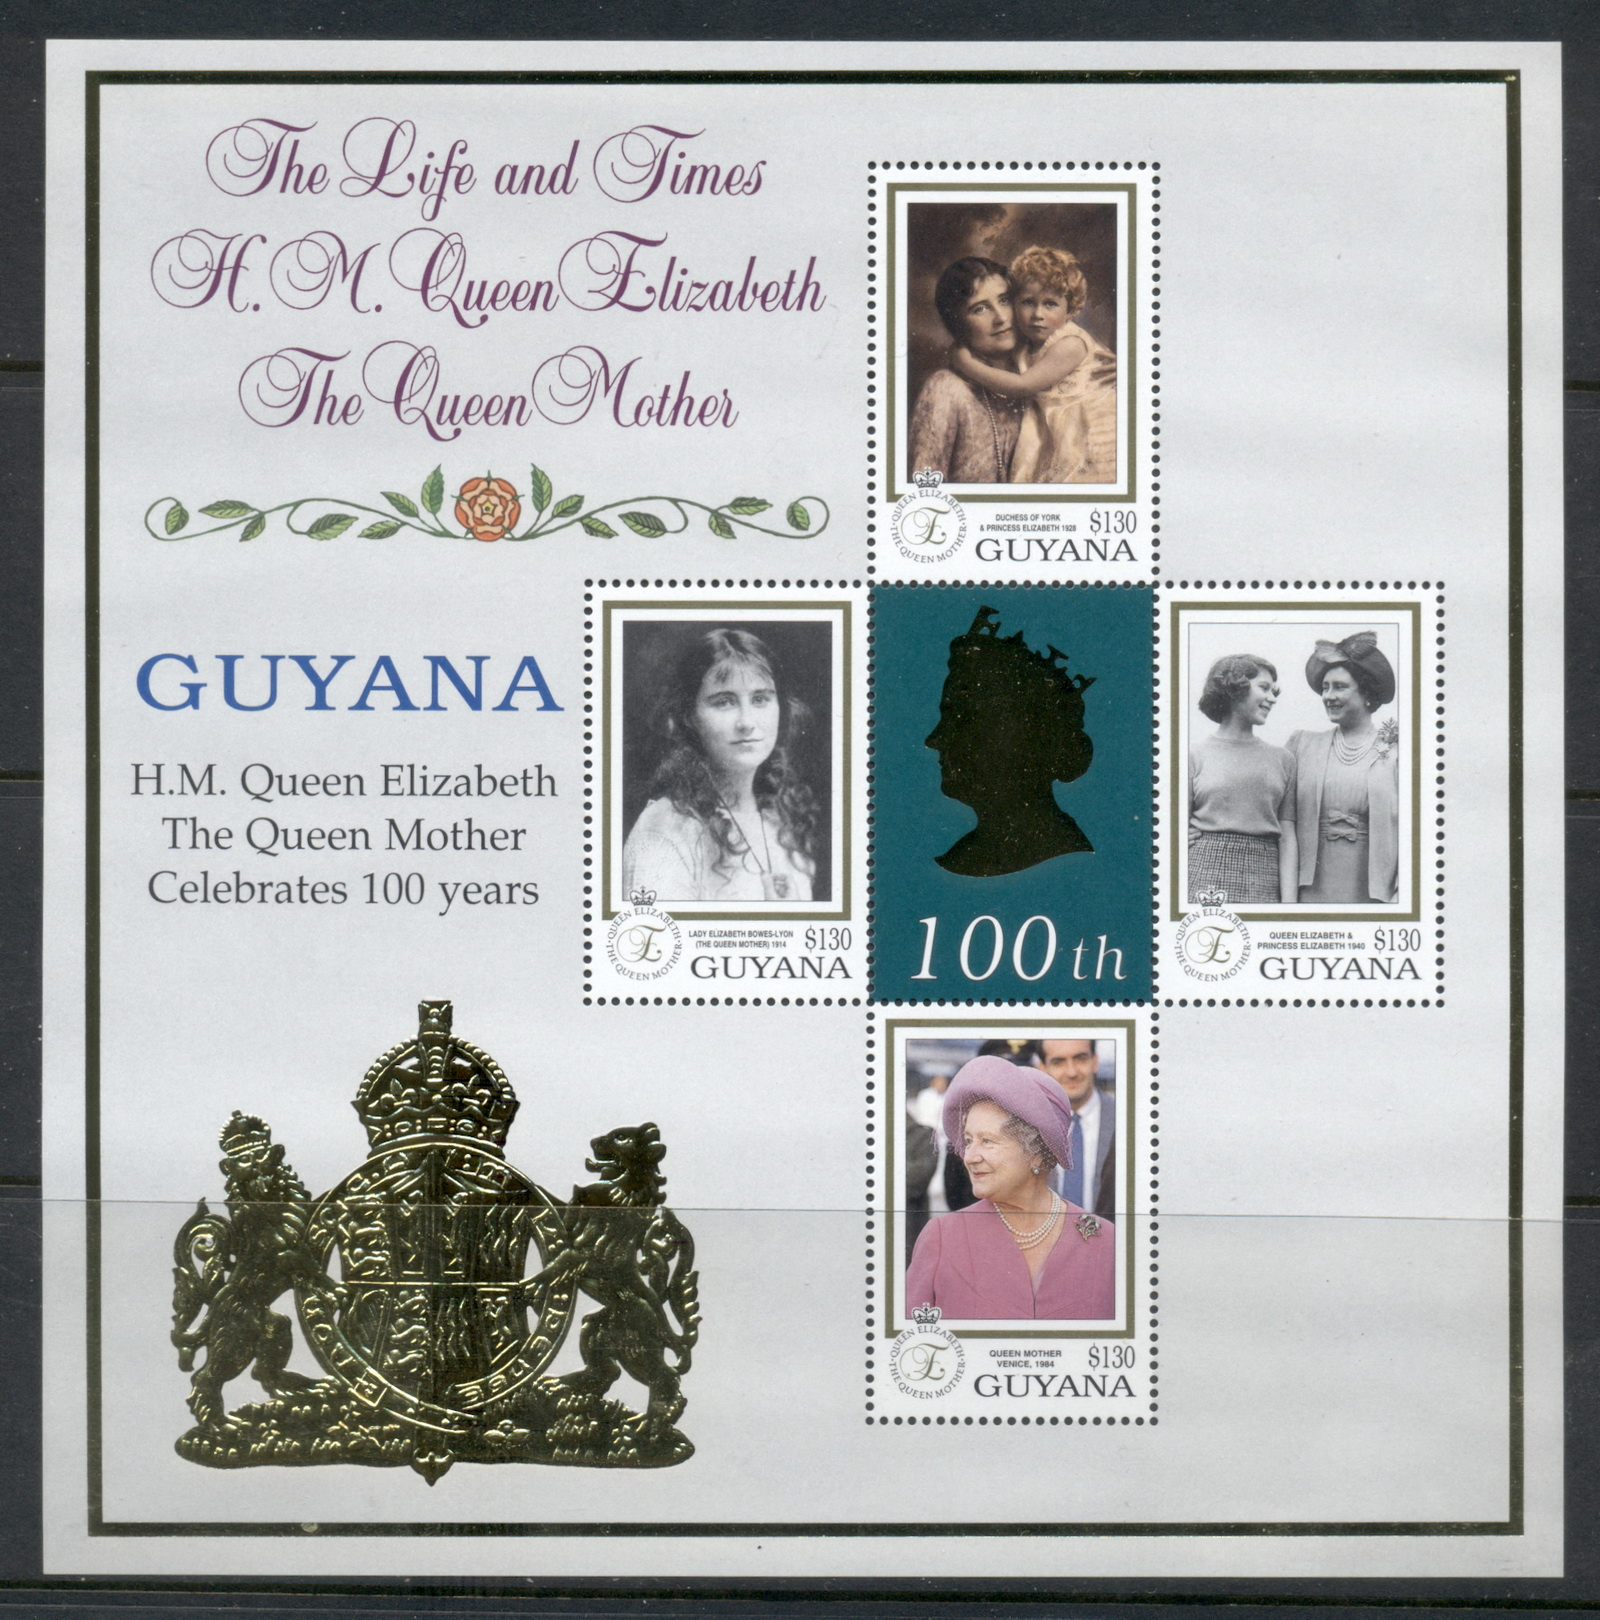 Guyana 1999 Queen Mother 100th Birthday gold foil embossed MS MUH